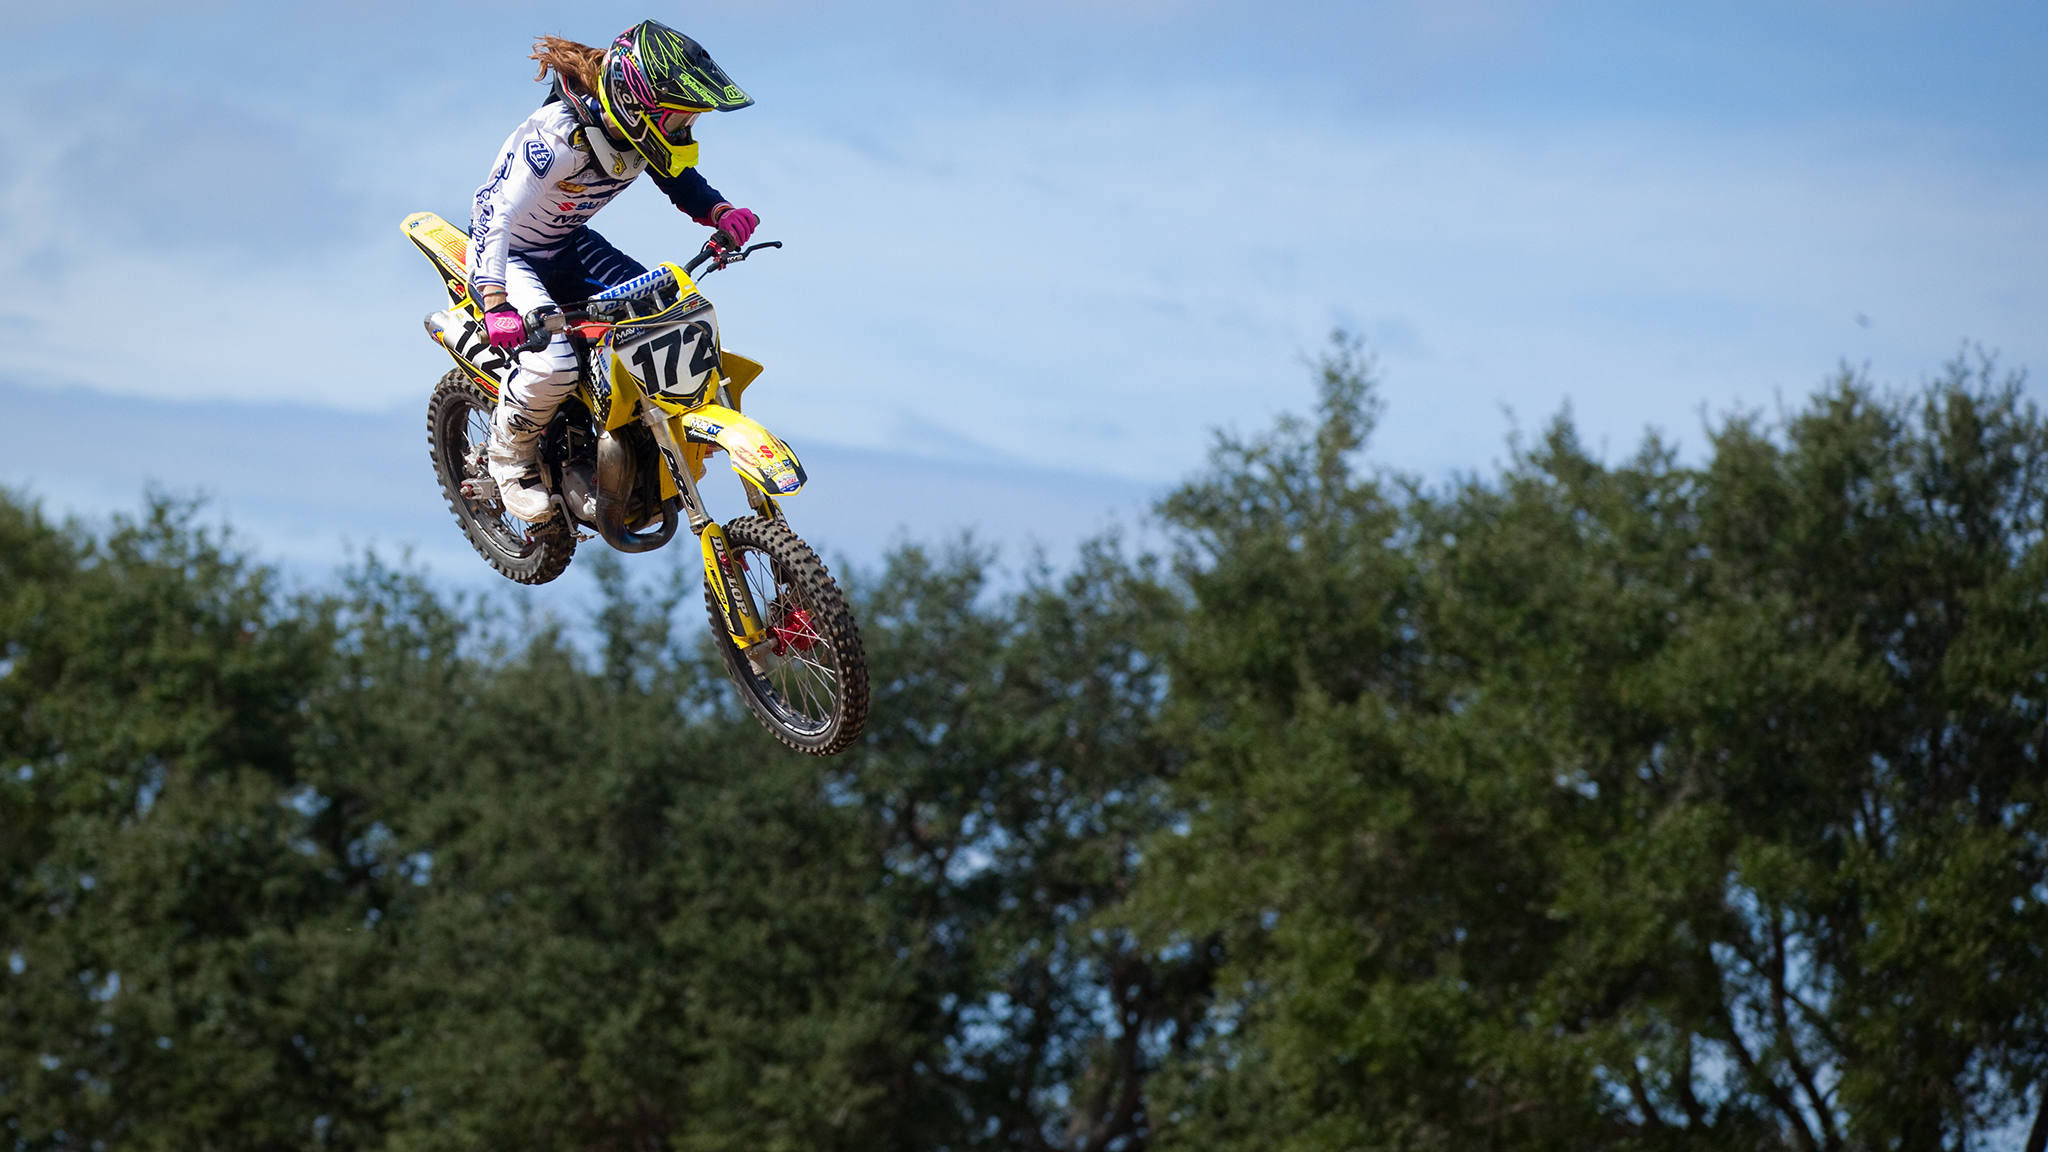 Hodges competes in the 2013 Thor Winter Olympics (also known as Mini O's) held at Gatorback Cycle Park in Gainesville, Florida, in November. Hodges took home the girls (12-16) motocross and supercross championships, as well as Women 14-plus supercross championship.